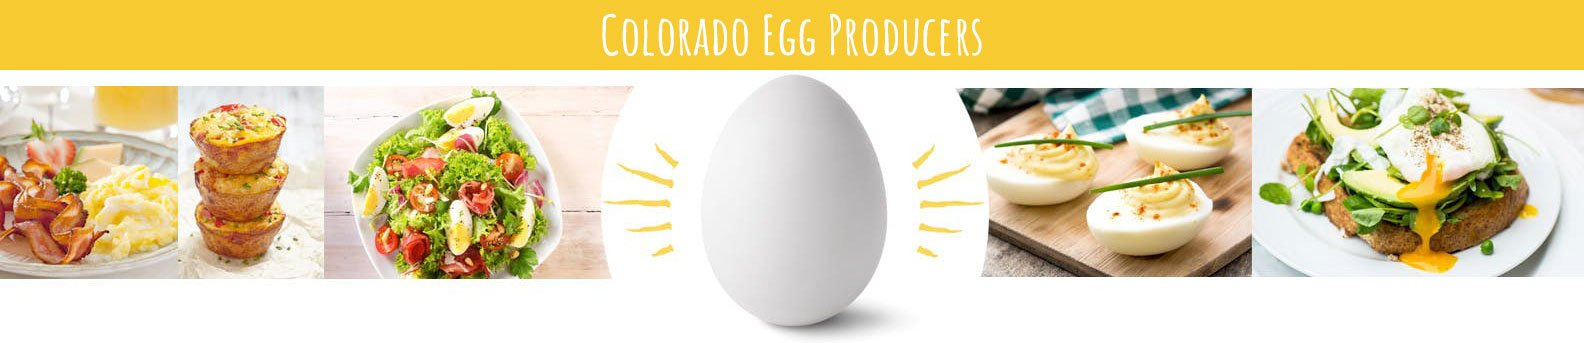 Colorado Egg Producers